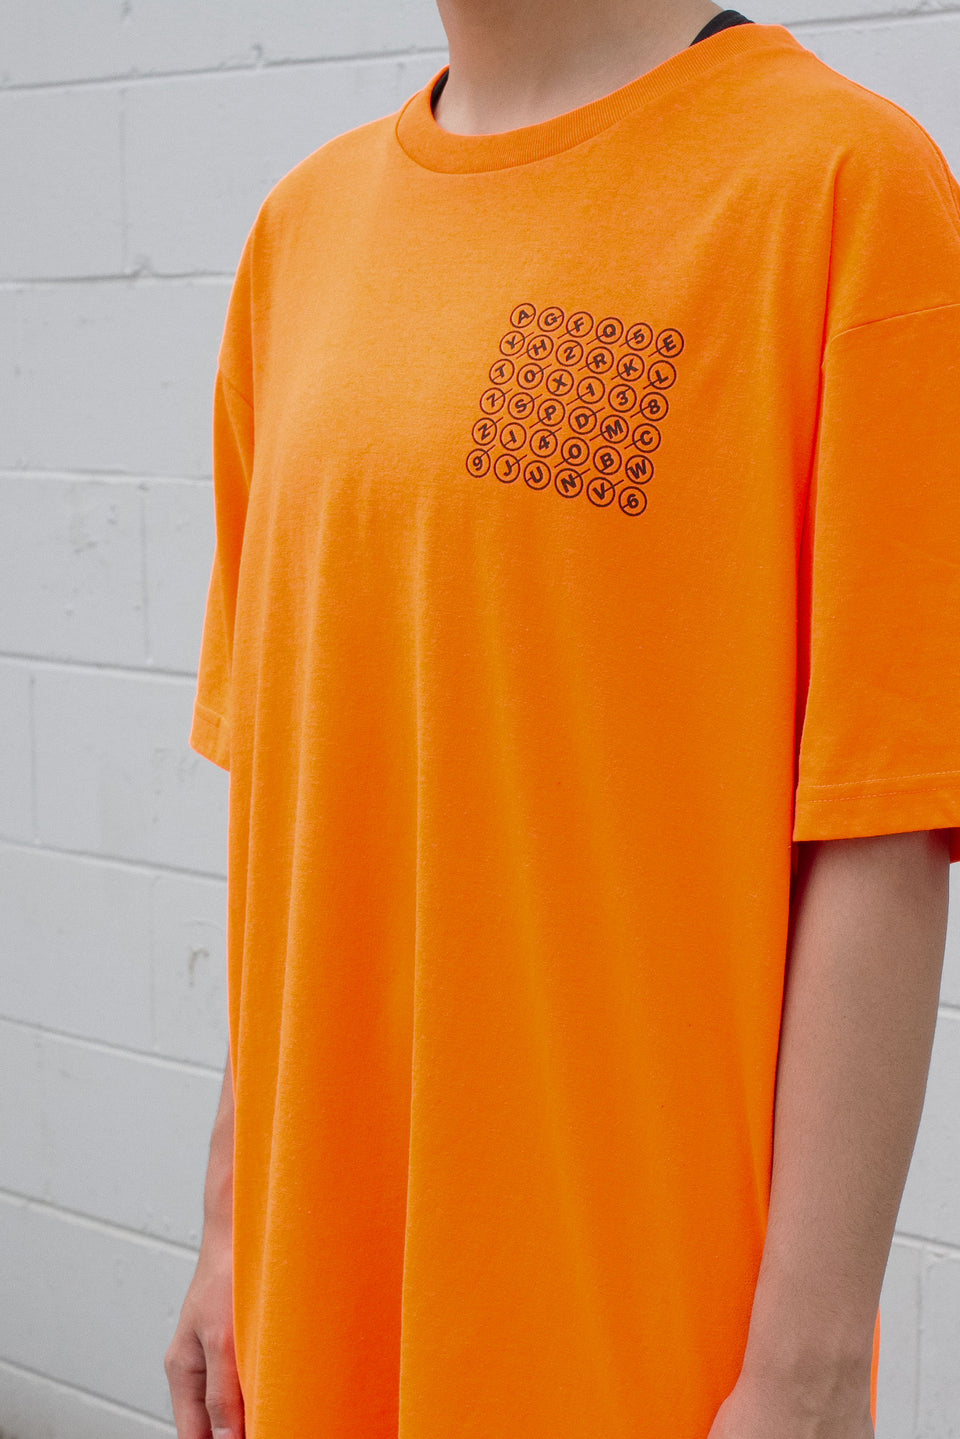 Blockchain Safety Orange Tee